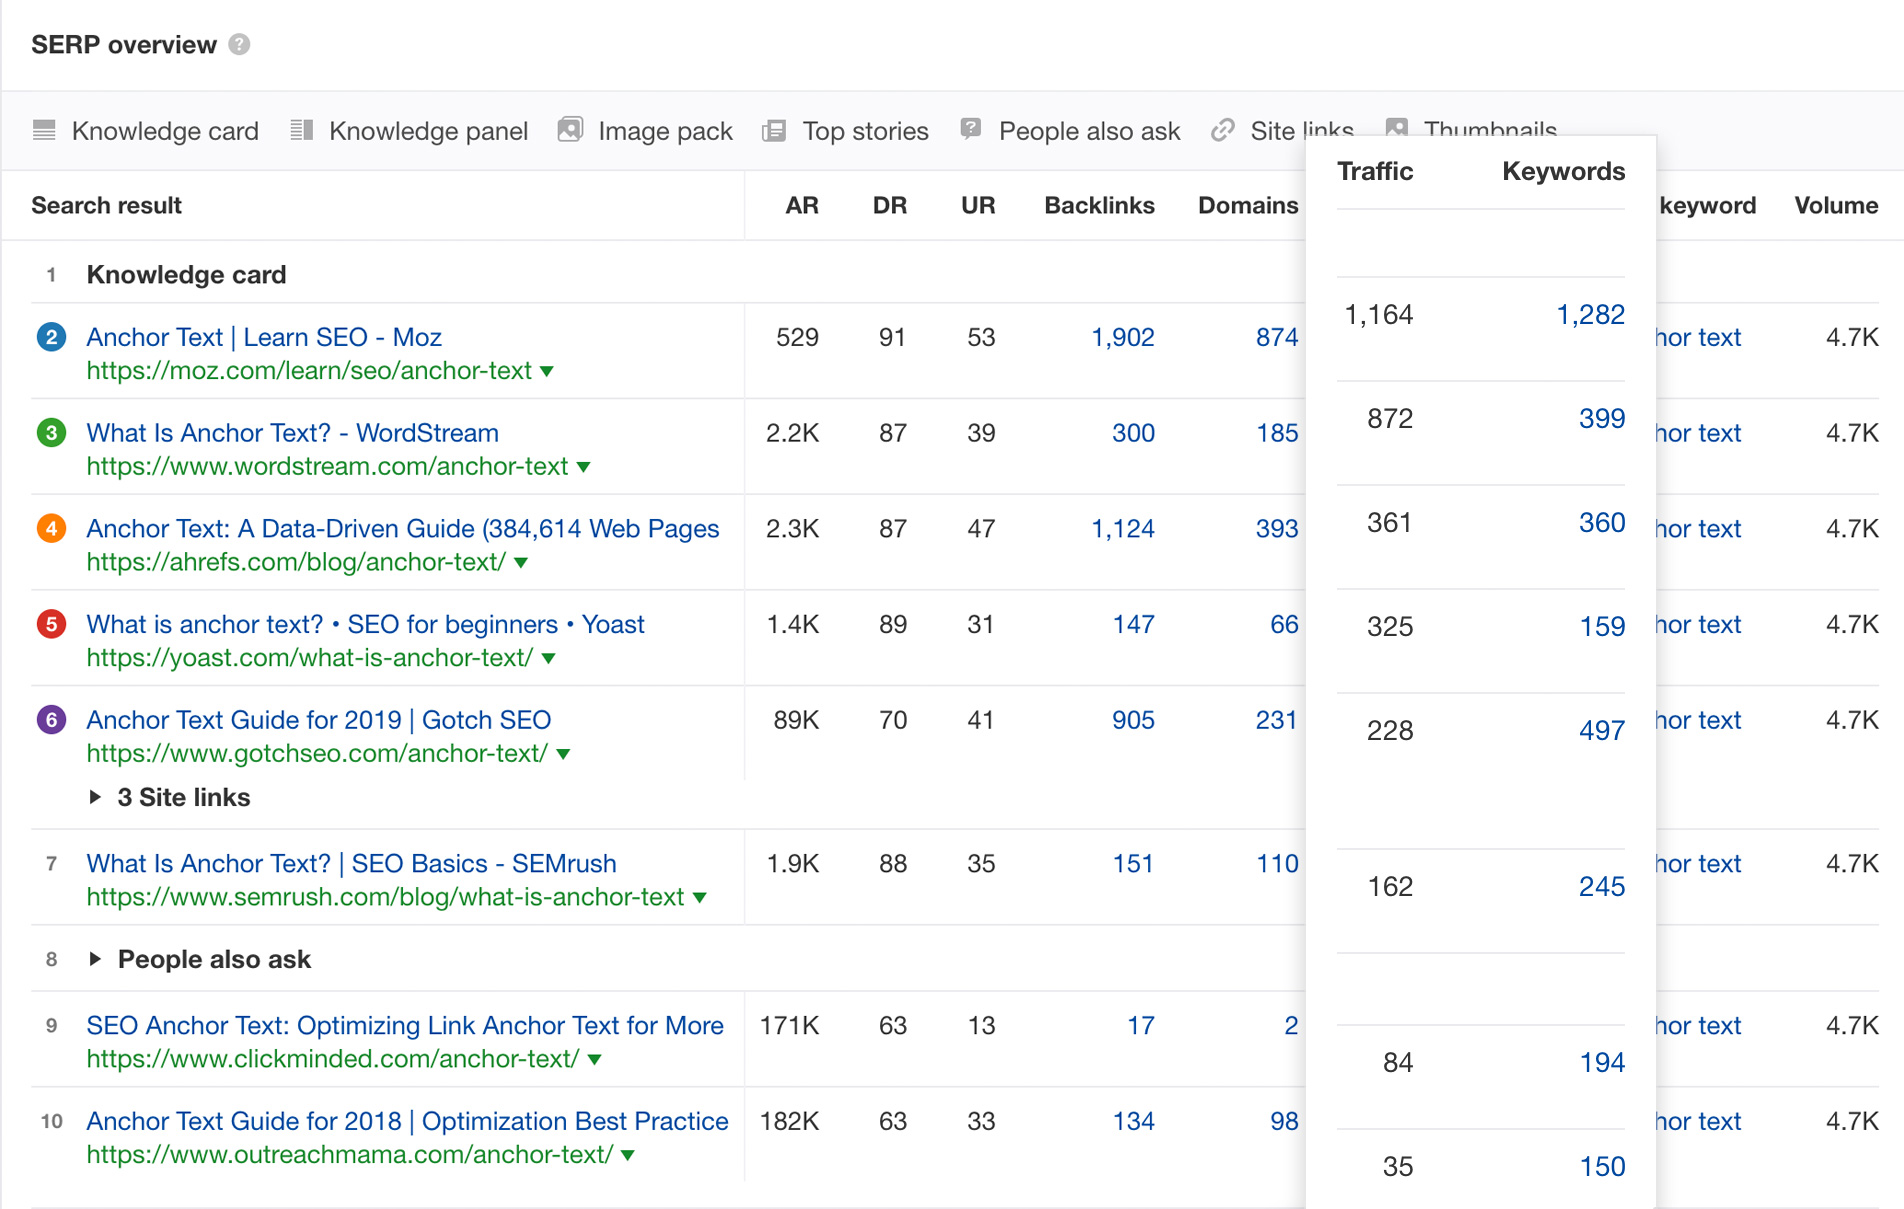 SERP Analysis in Ahrefs Based on traffic and keywords